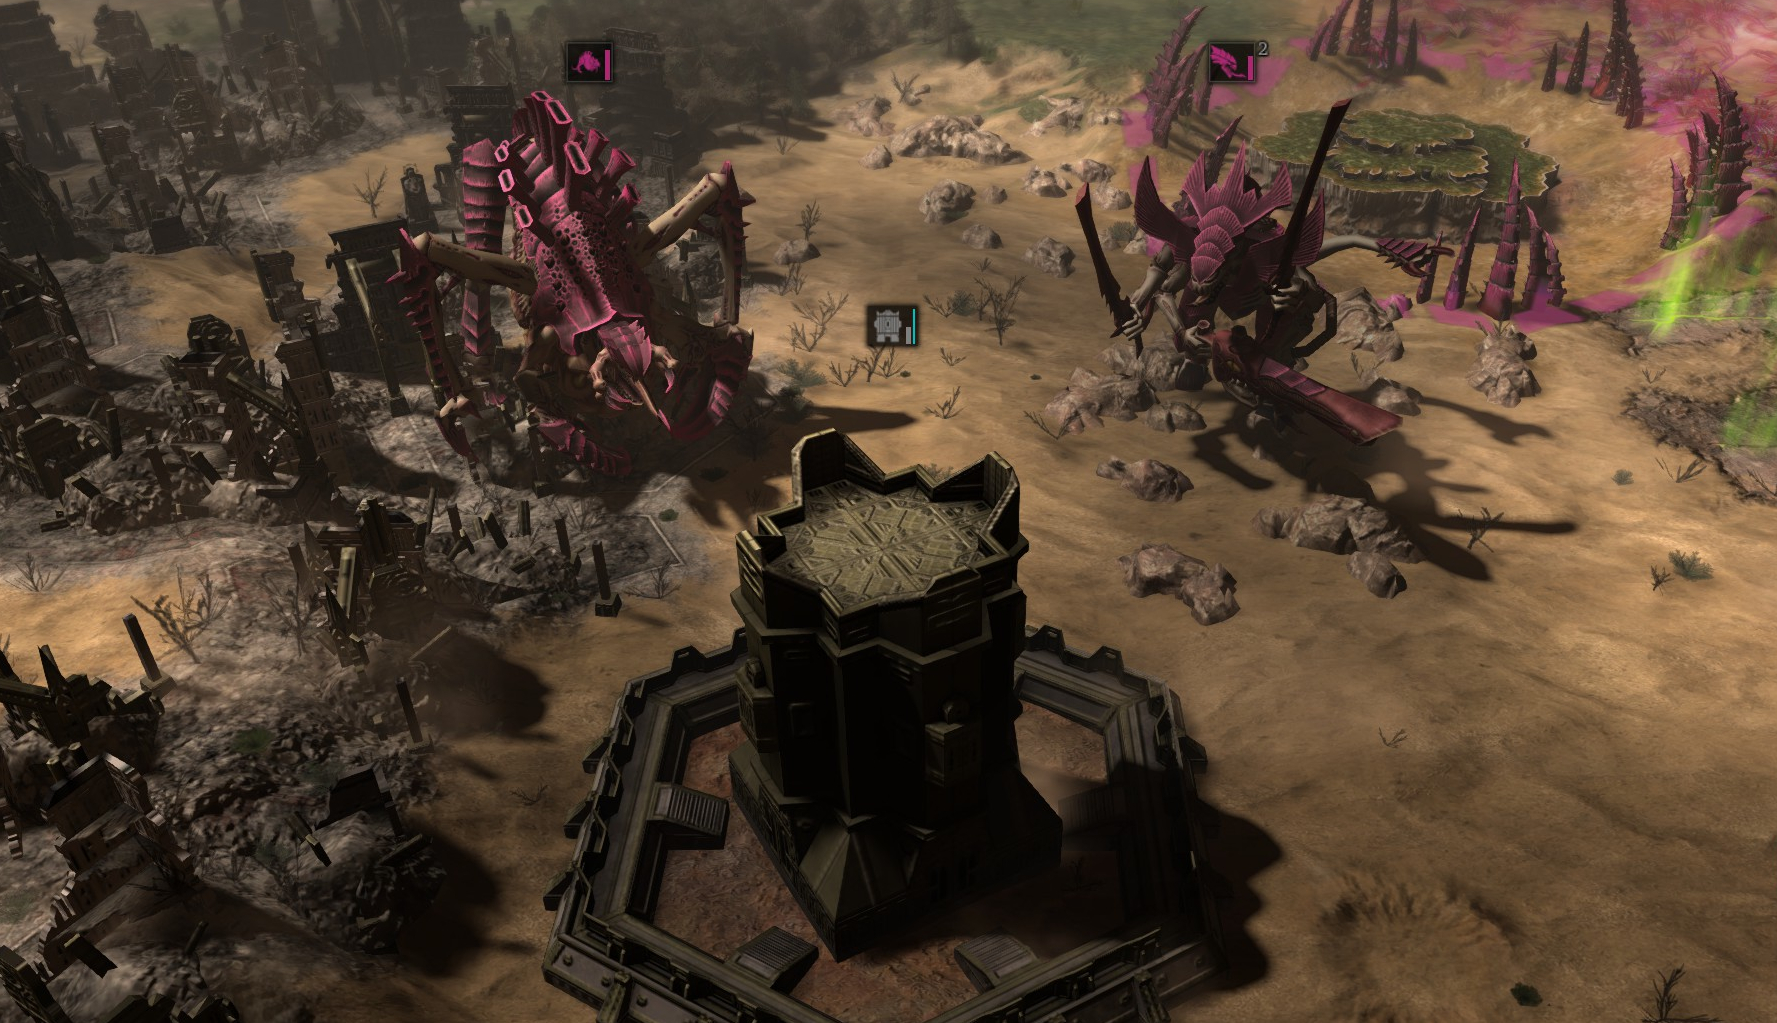 Warhammer 40,000: Gladius' Tyranids DLC adds a gruesome but fitting faction